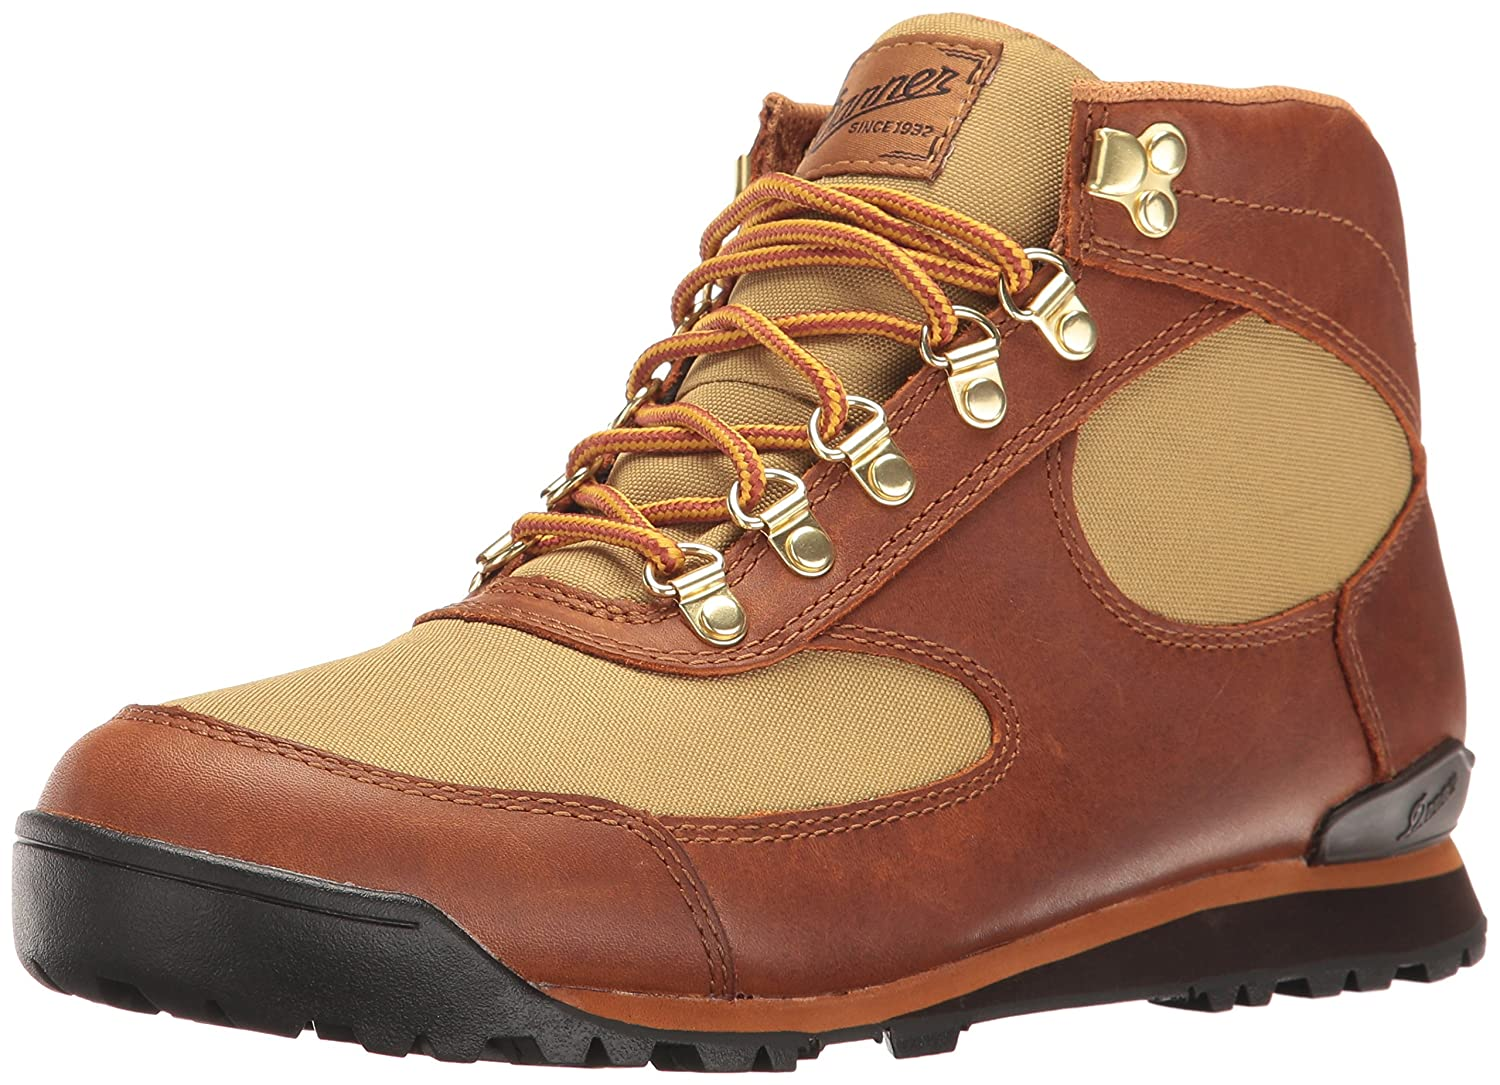 Danner Women's Jag Brown/Khaki Hiking Boot B01I331YJQ 8 M US|Brown/Khaki